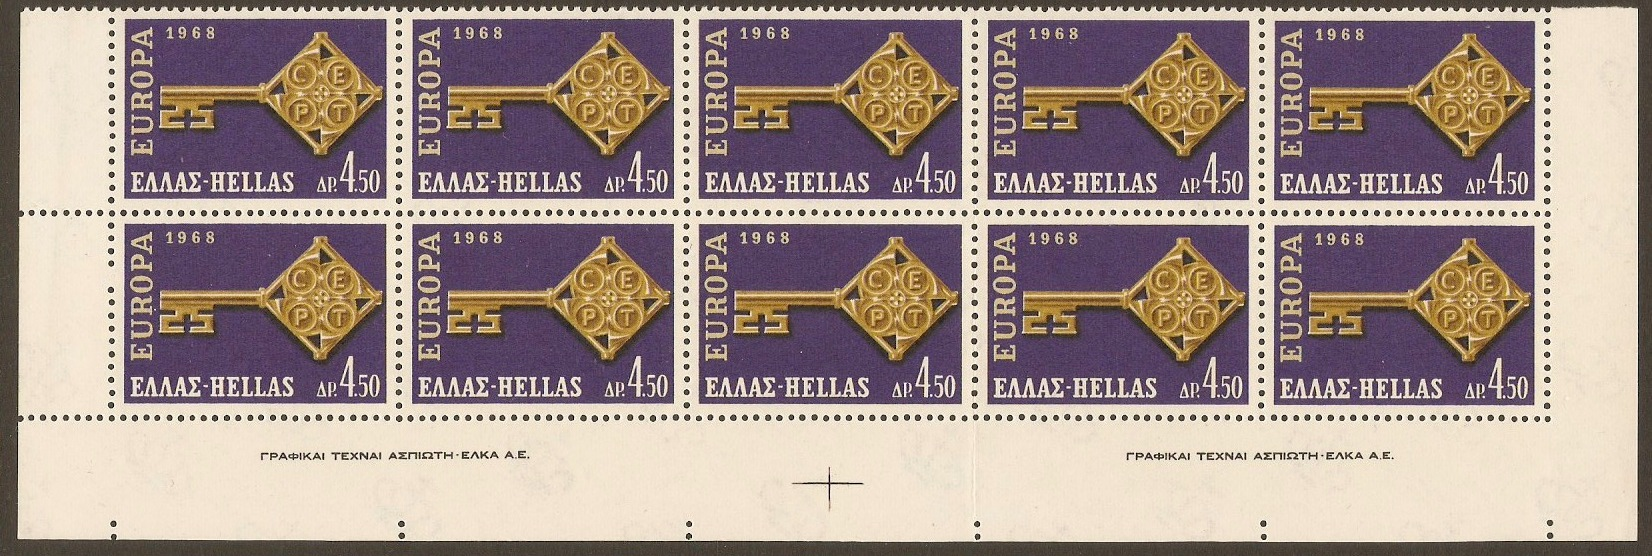 Greece 1968 4d.50 Europa Stamp. SG1077.